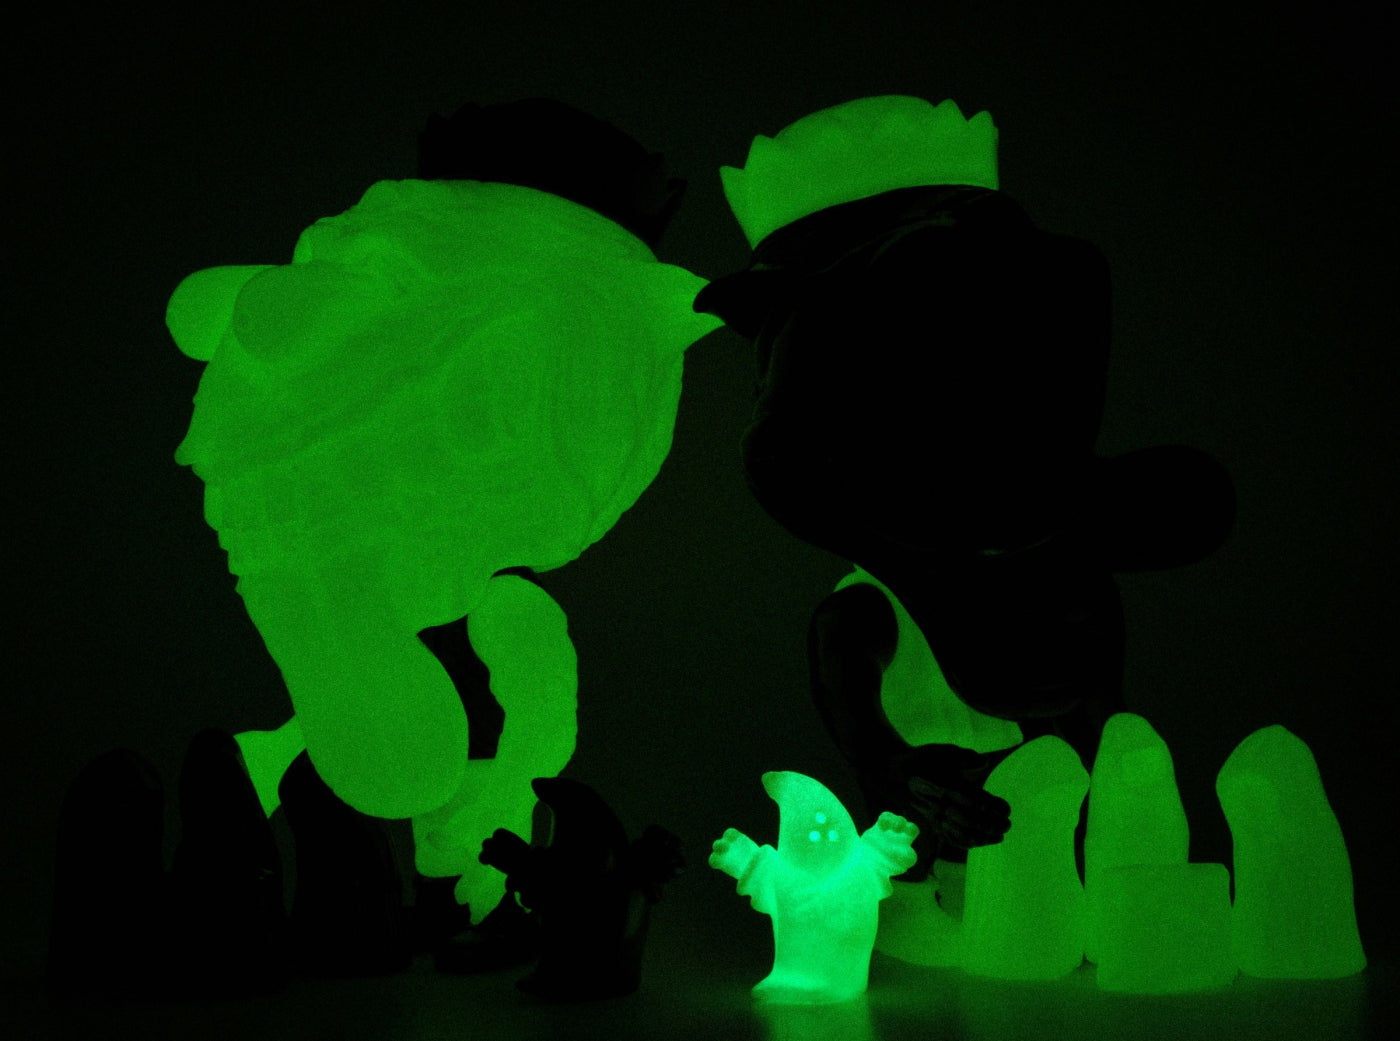 Wolfpack<br />[Glowth Spurt]